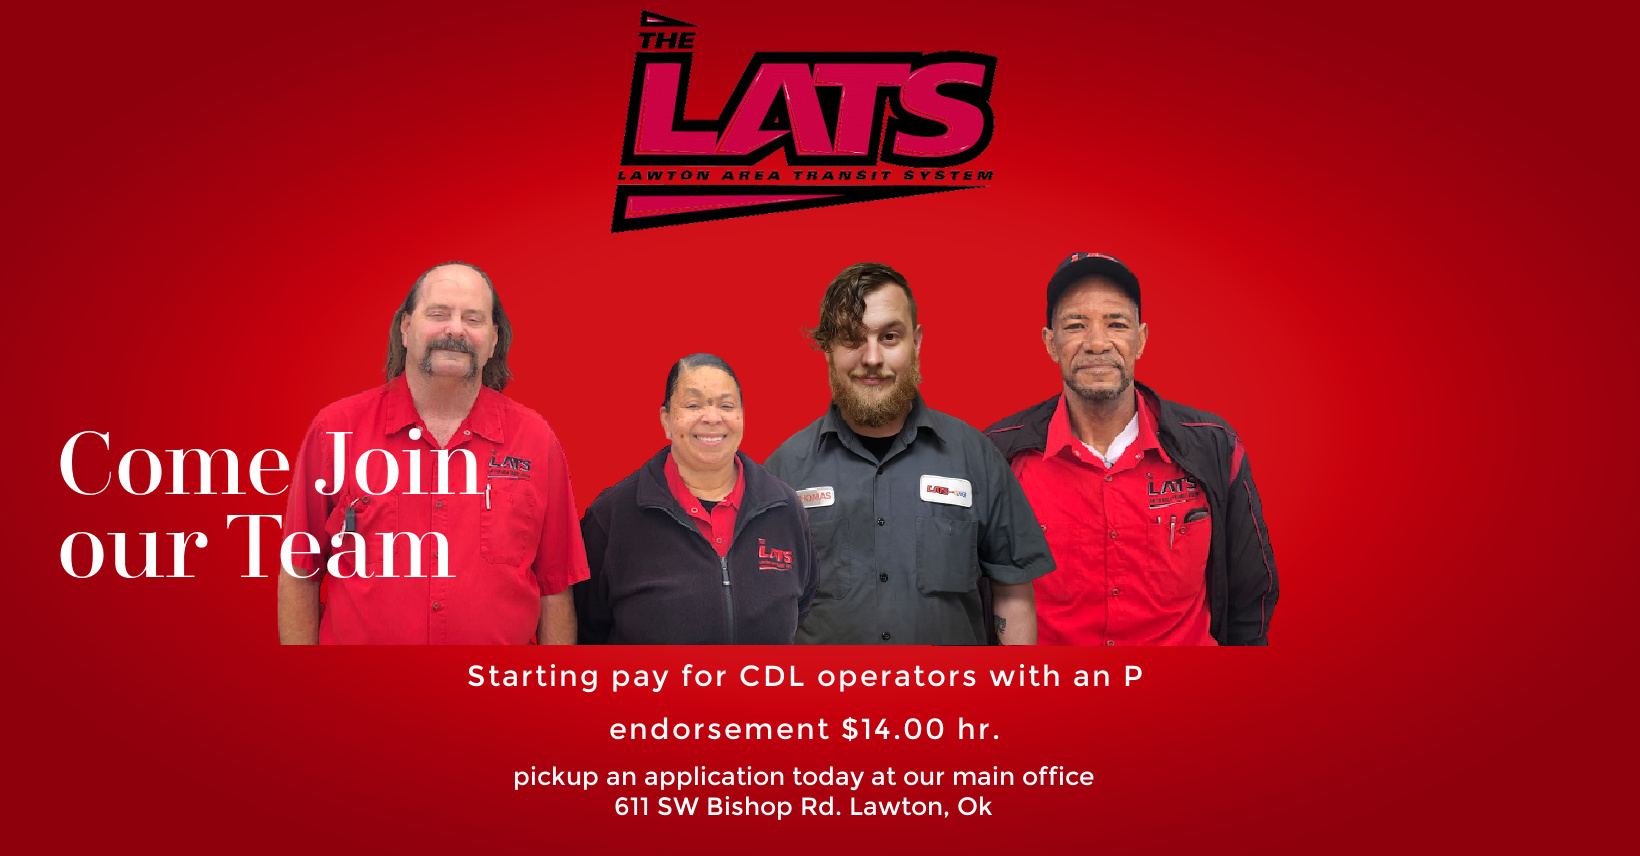 Come be part of our team